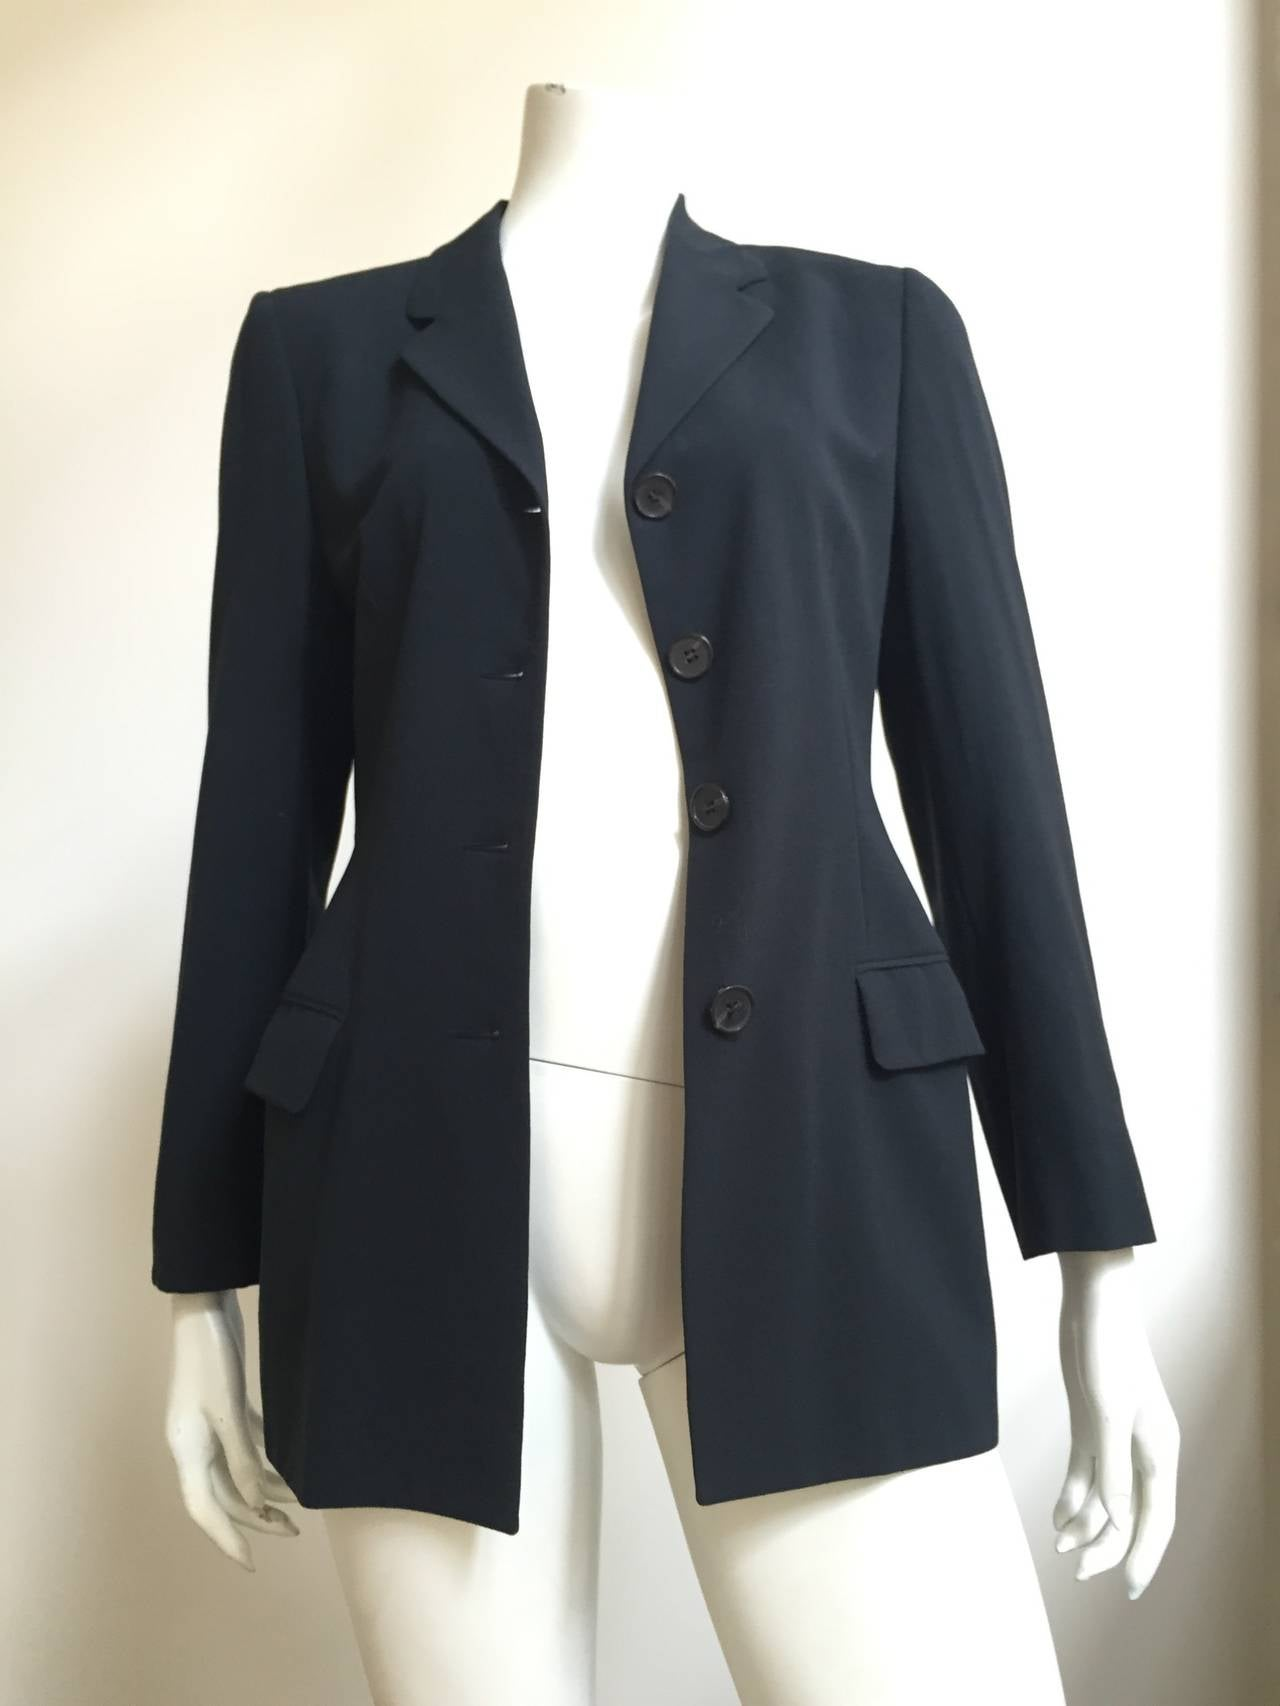 """Loro Piana four button charcoal gray wool jacket is a size 8 / 42. Known for using only the best fabrics this Loro Piana jacket is timeless. Measurements are: 37"""" bust 23"""" sleeves 29. 1/2"""" jacket height."""